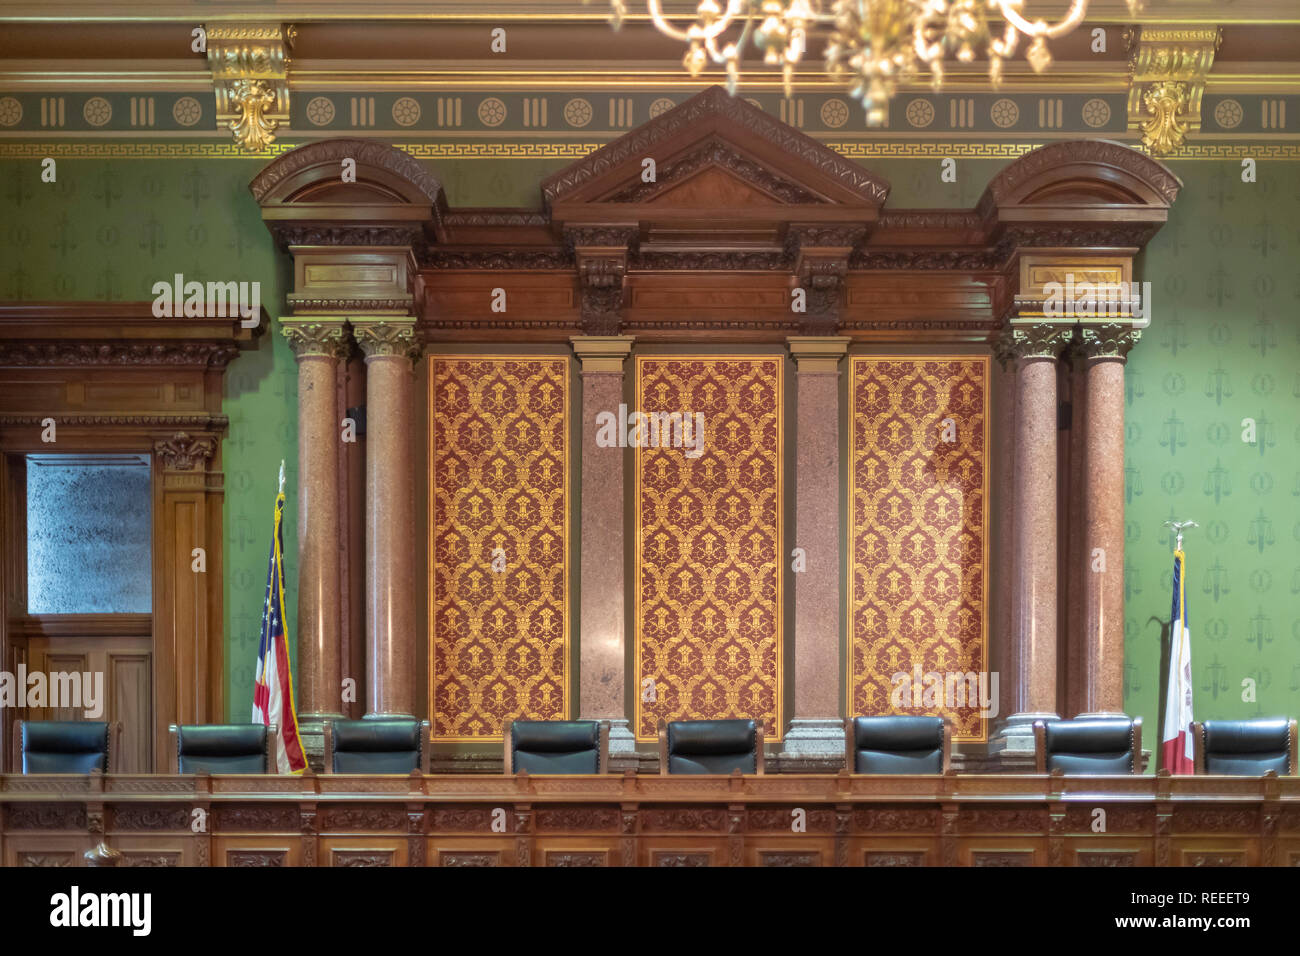 Des Moines, Iowa - The old Supreme Court chamber in the Iowa state capitol building. - Stock Image